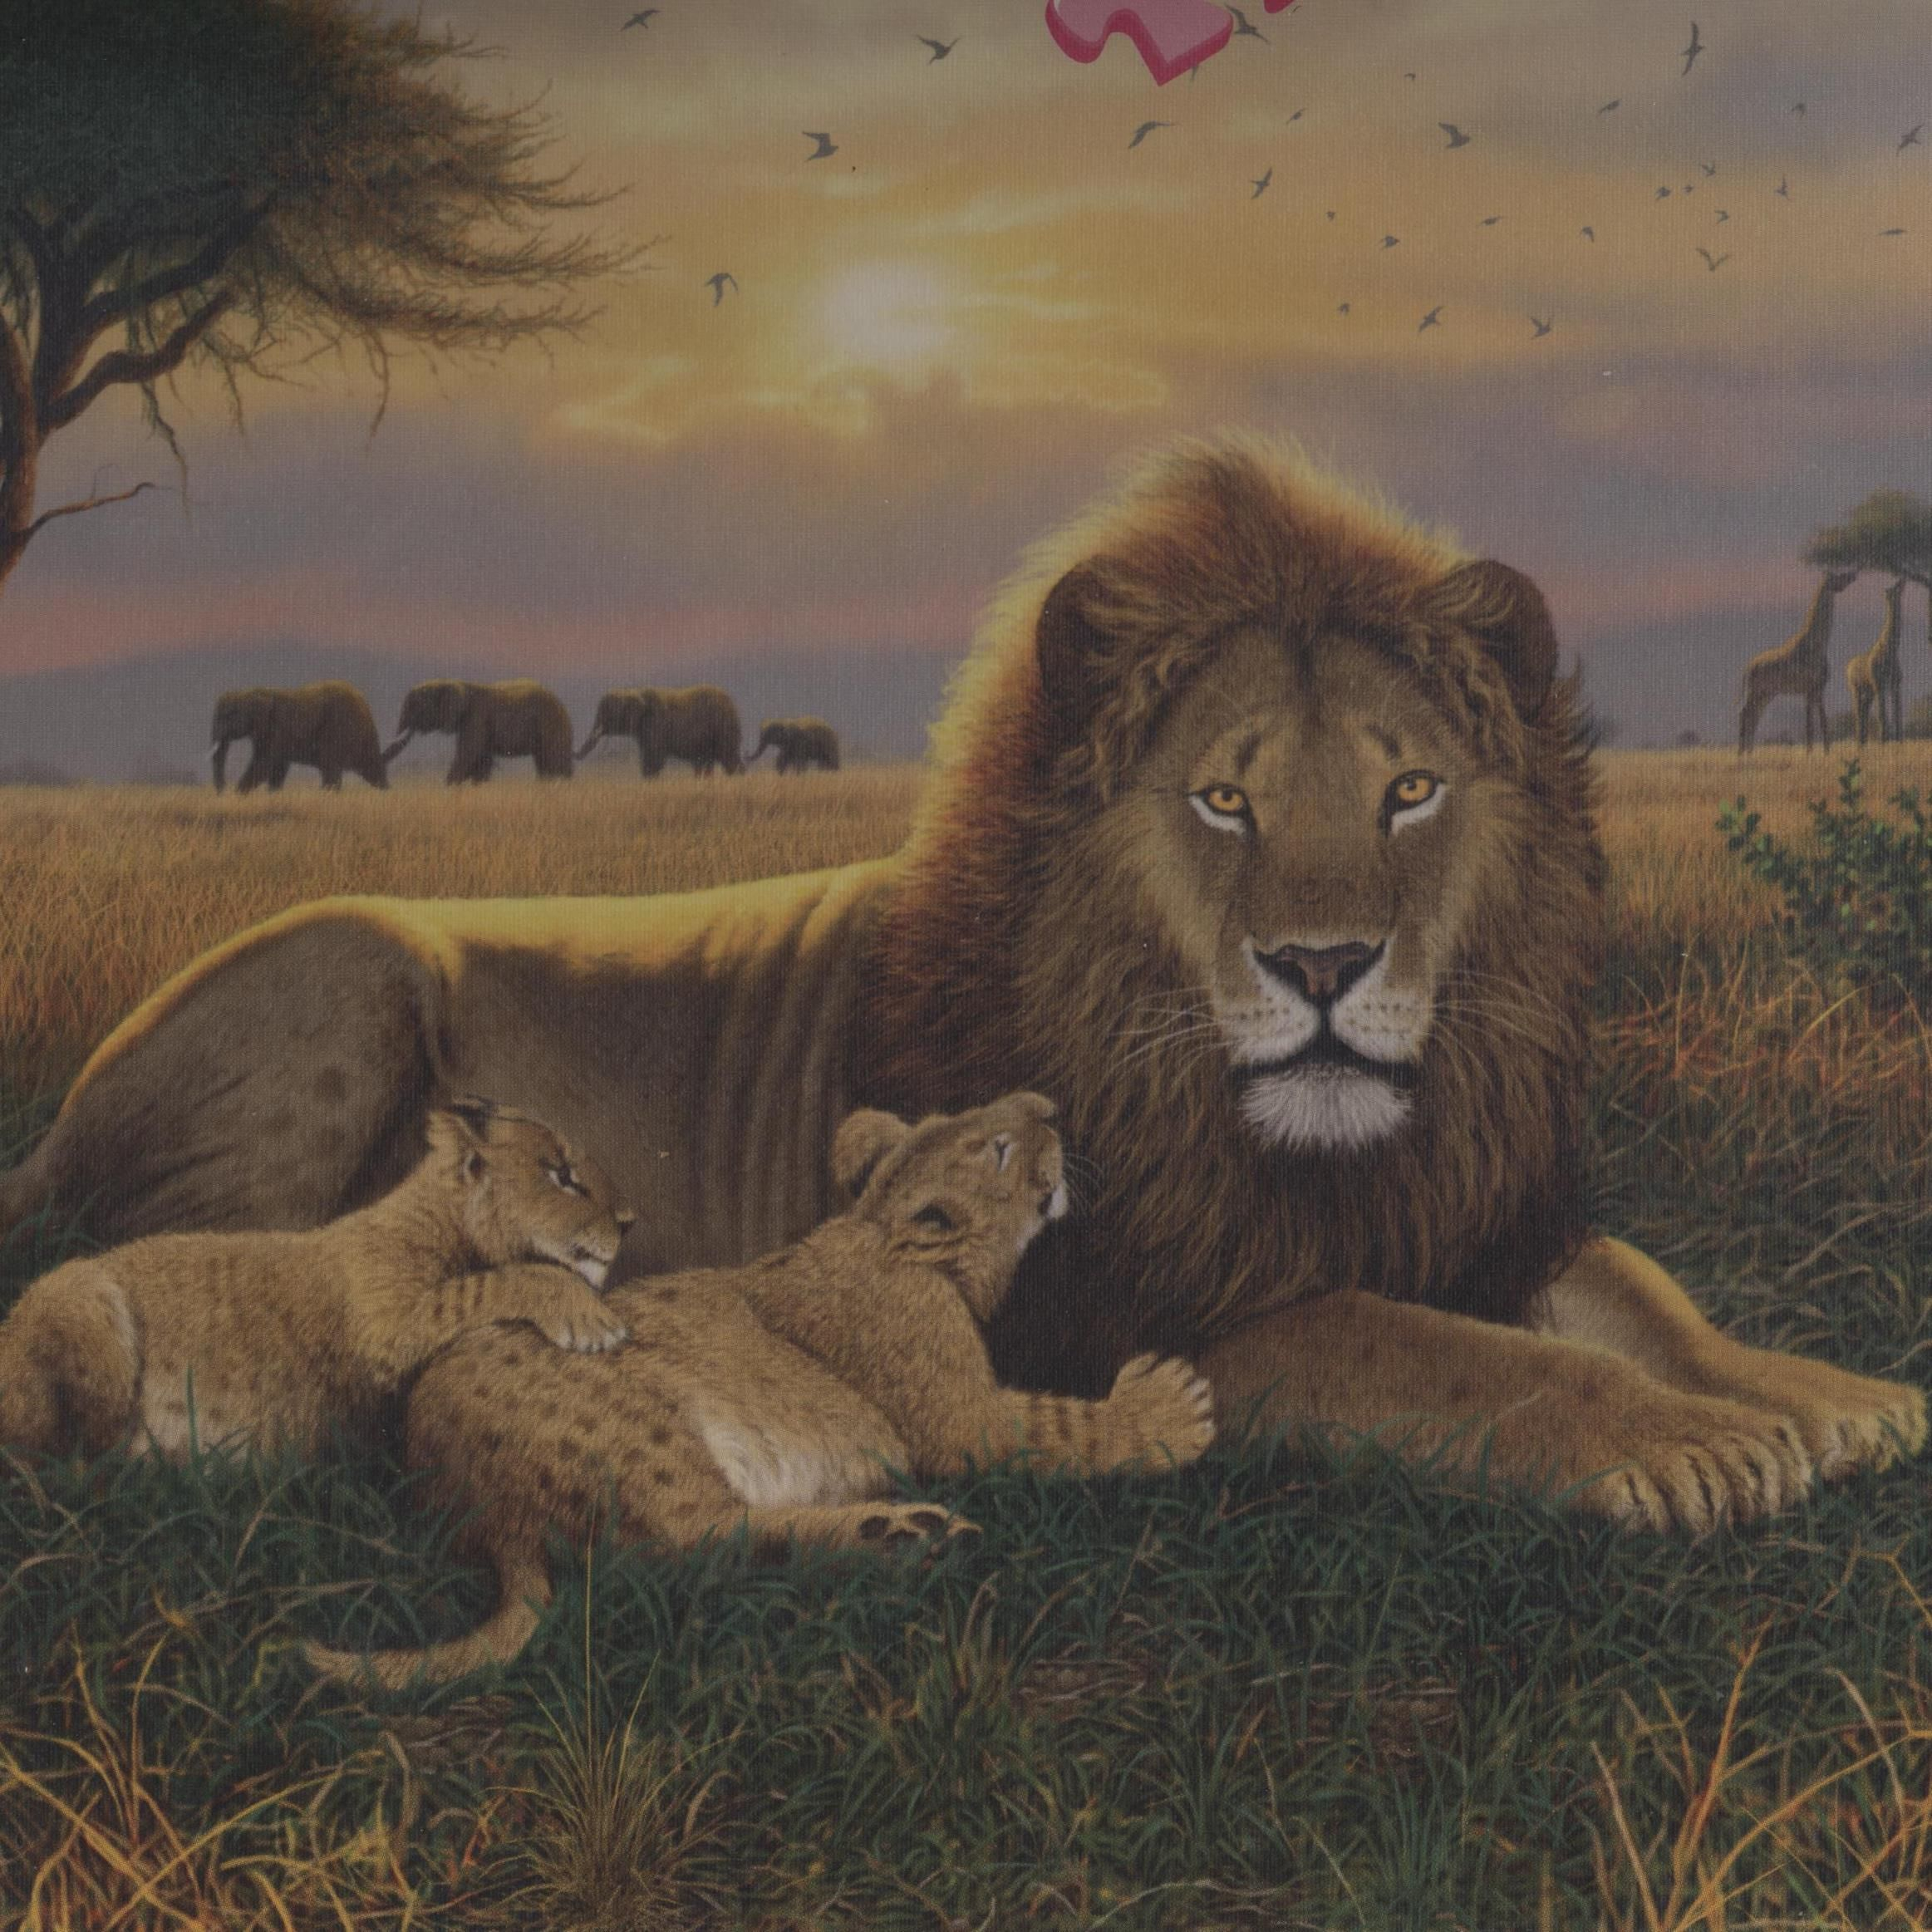 kings of the serengeti african lions themed 1000 piece jigsaw